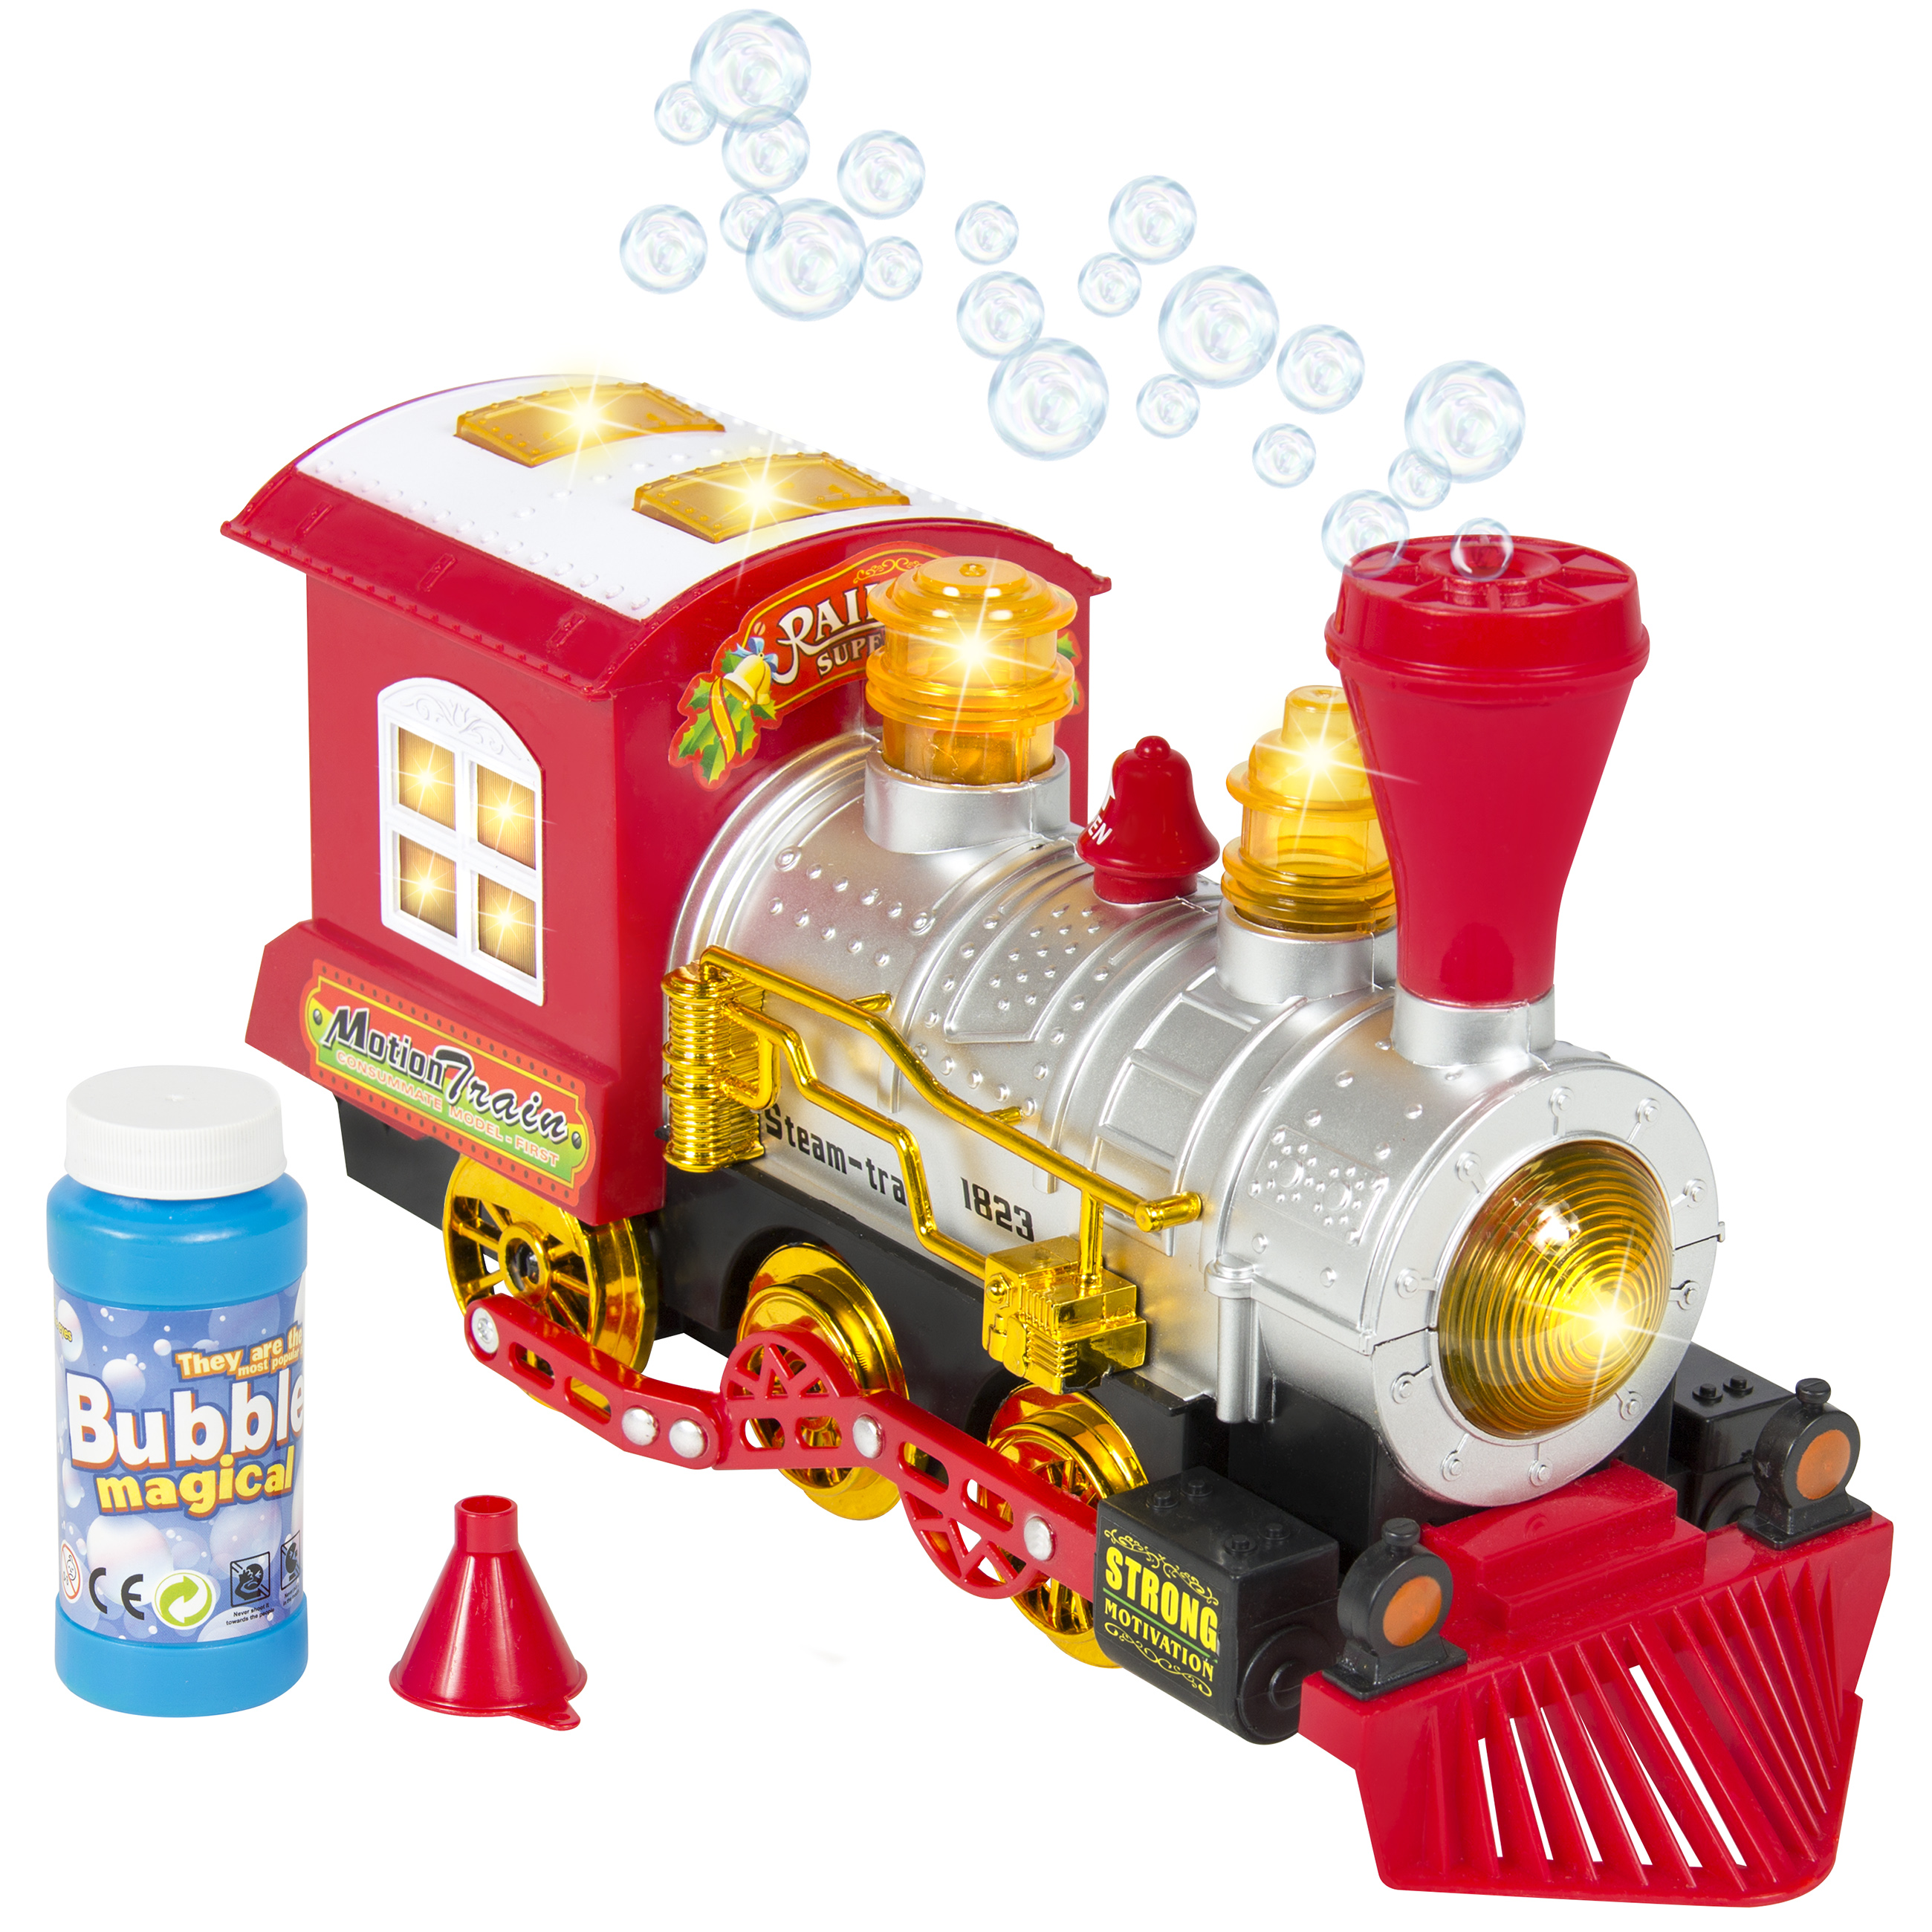 Best Choice Products Kids Toy Blowing Bubble Train Car Bump And Go Battery Operated w/ Music, Lights, Includes Bubbles